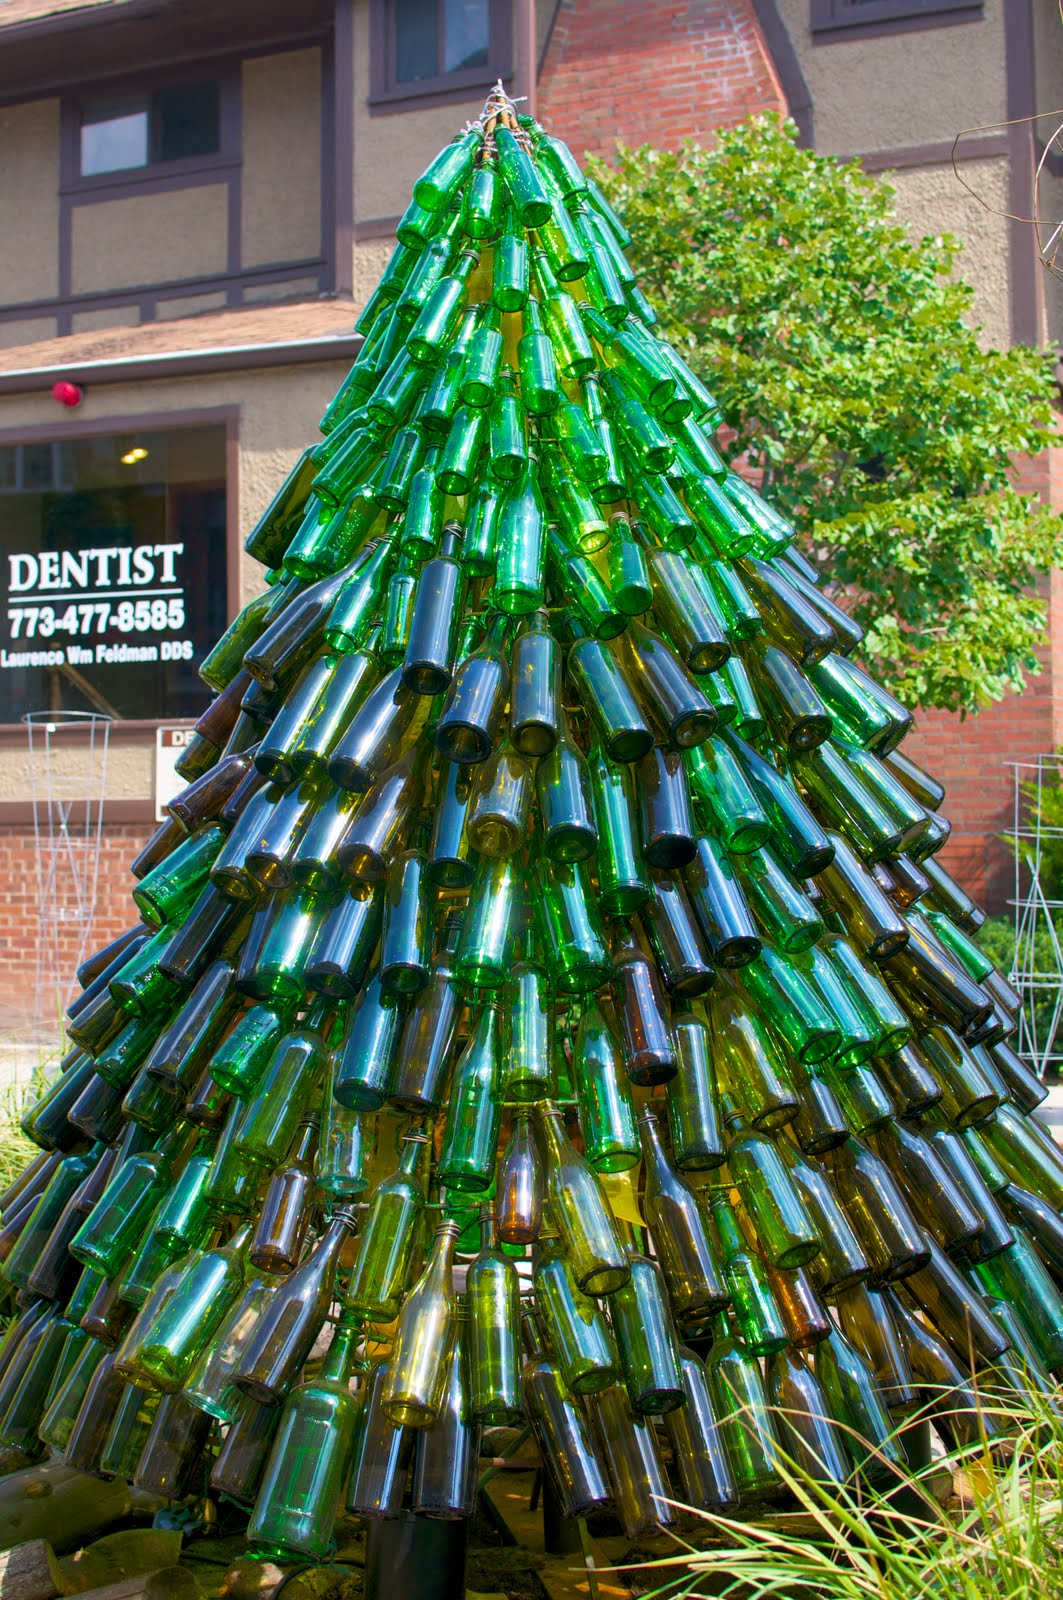 Daily chicago photo september 2011 for How to make a beer bottle christmas tree